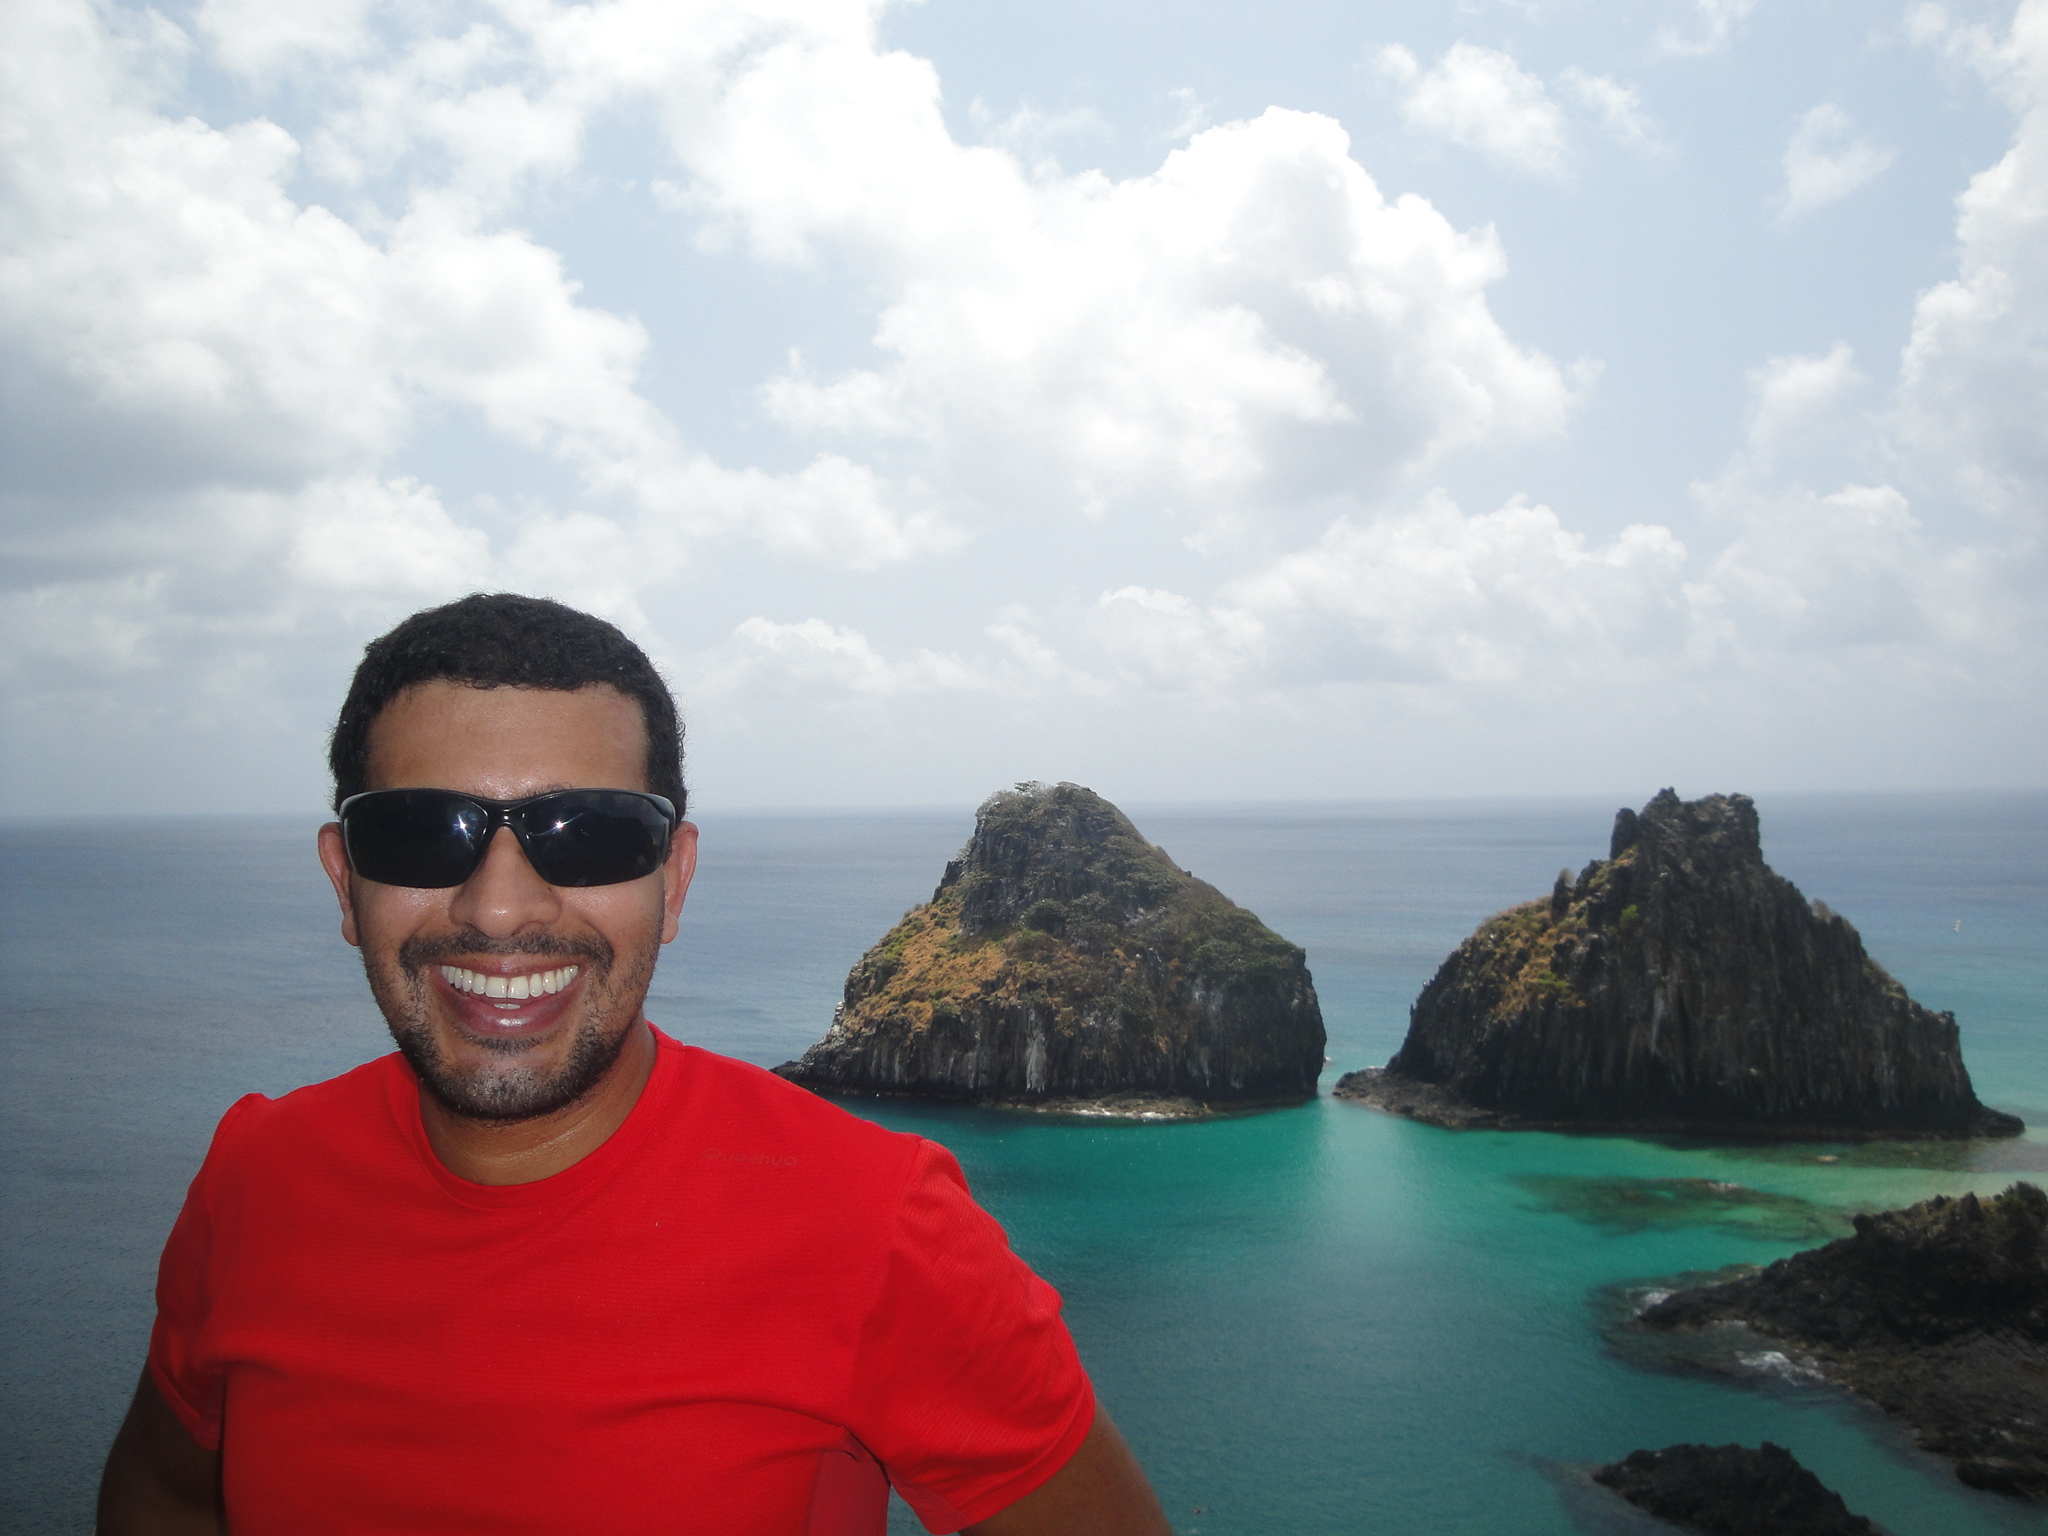 Rafael Lima - Department Chief at Leroy Merlin - Connecting Stories PARTTEAM & OEMKIOSKS